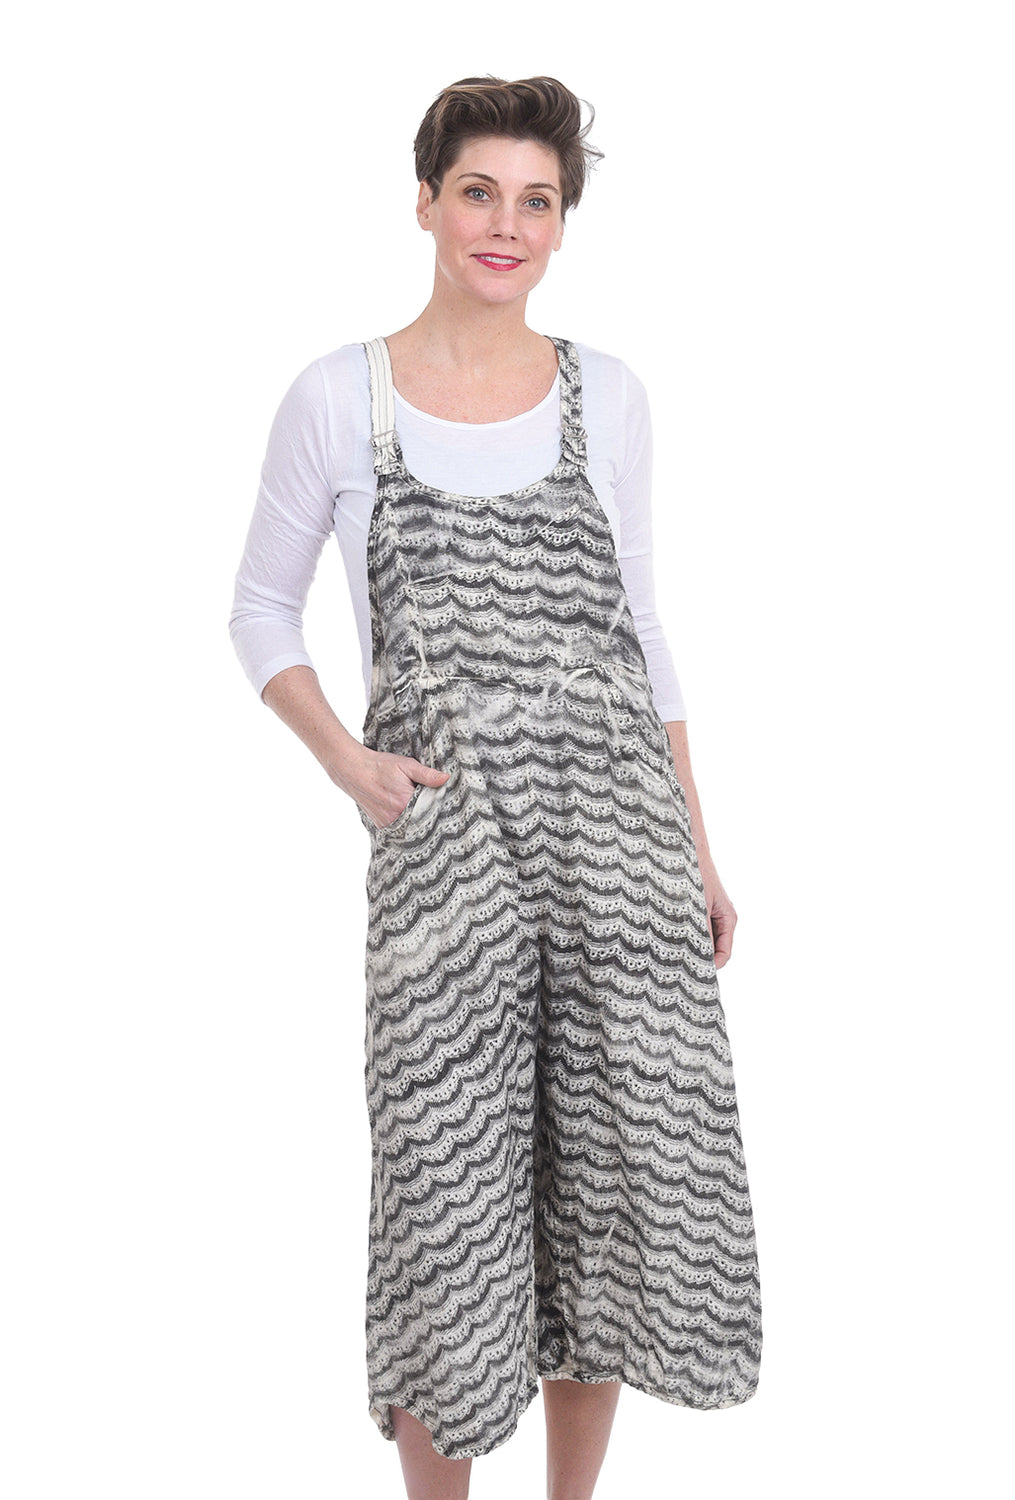 Cynthia Ashby Delight Linen Overalls, Ivory Print